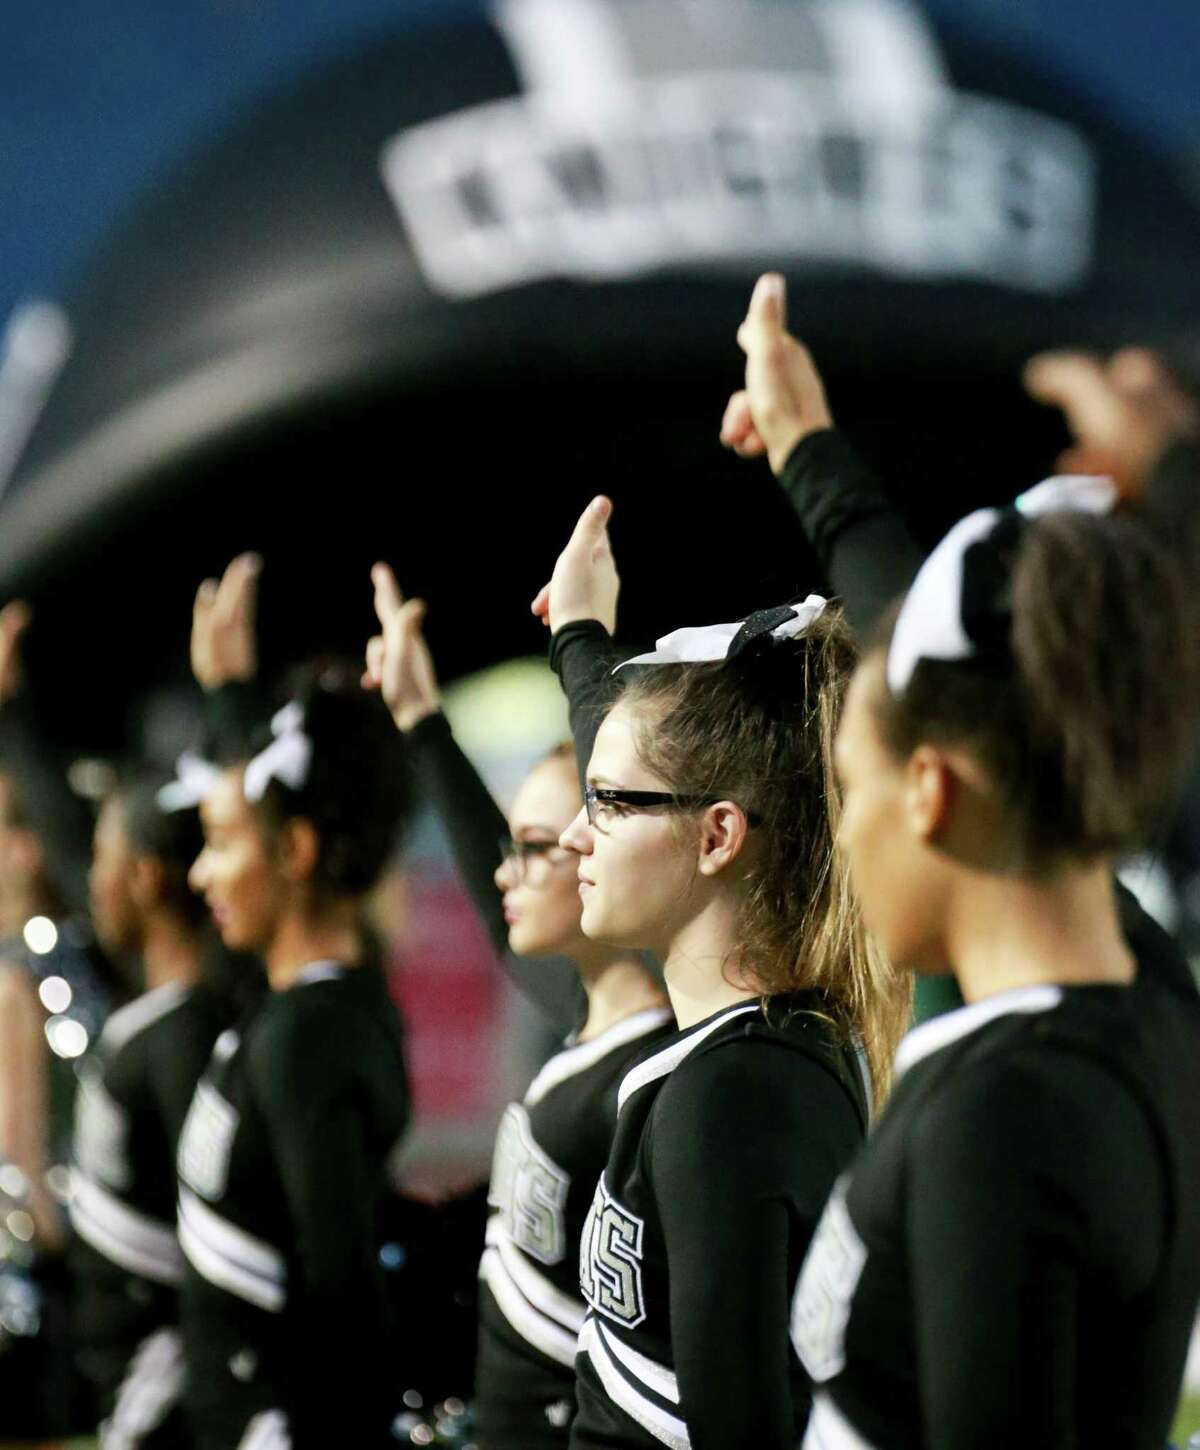 Freshman cheerleader Hollis Campbell stands with the rest of the cheer squad before the kickoff at Buccaneer Stadium in Corpus Christi on November 25, 2016.